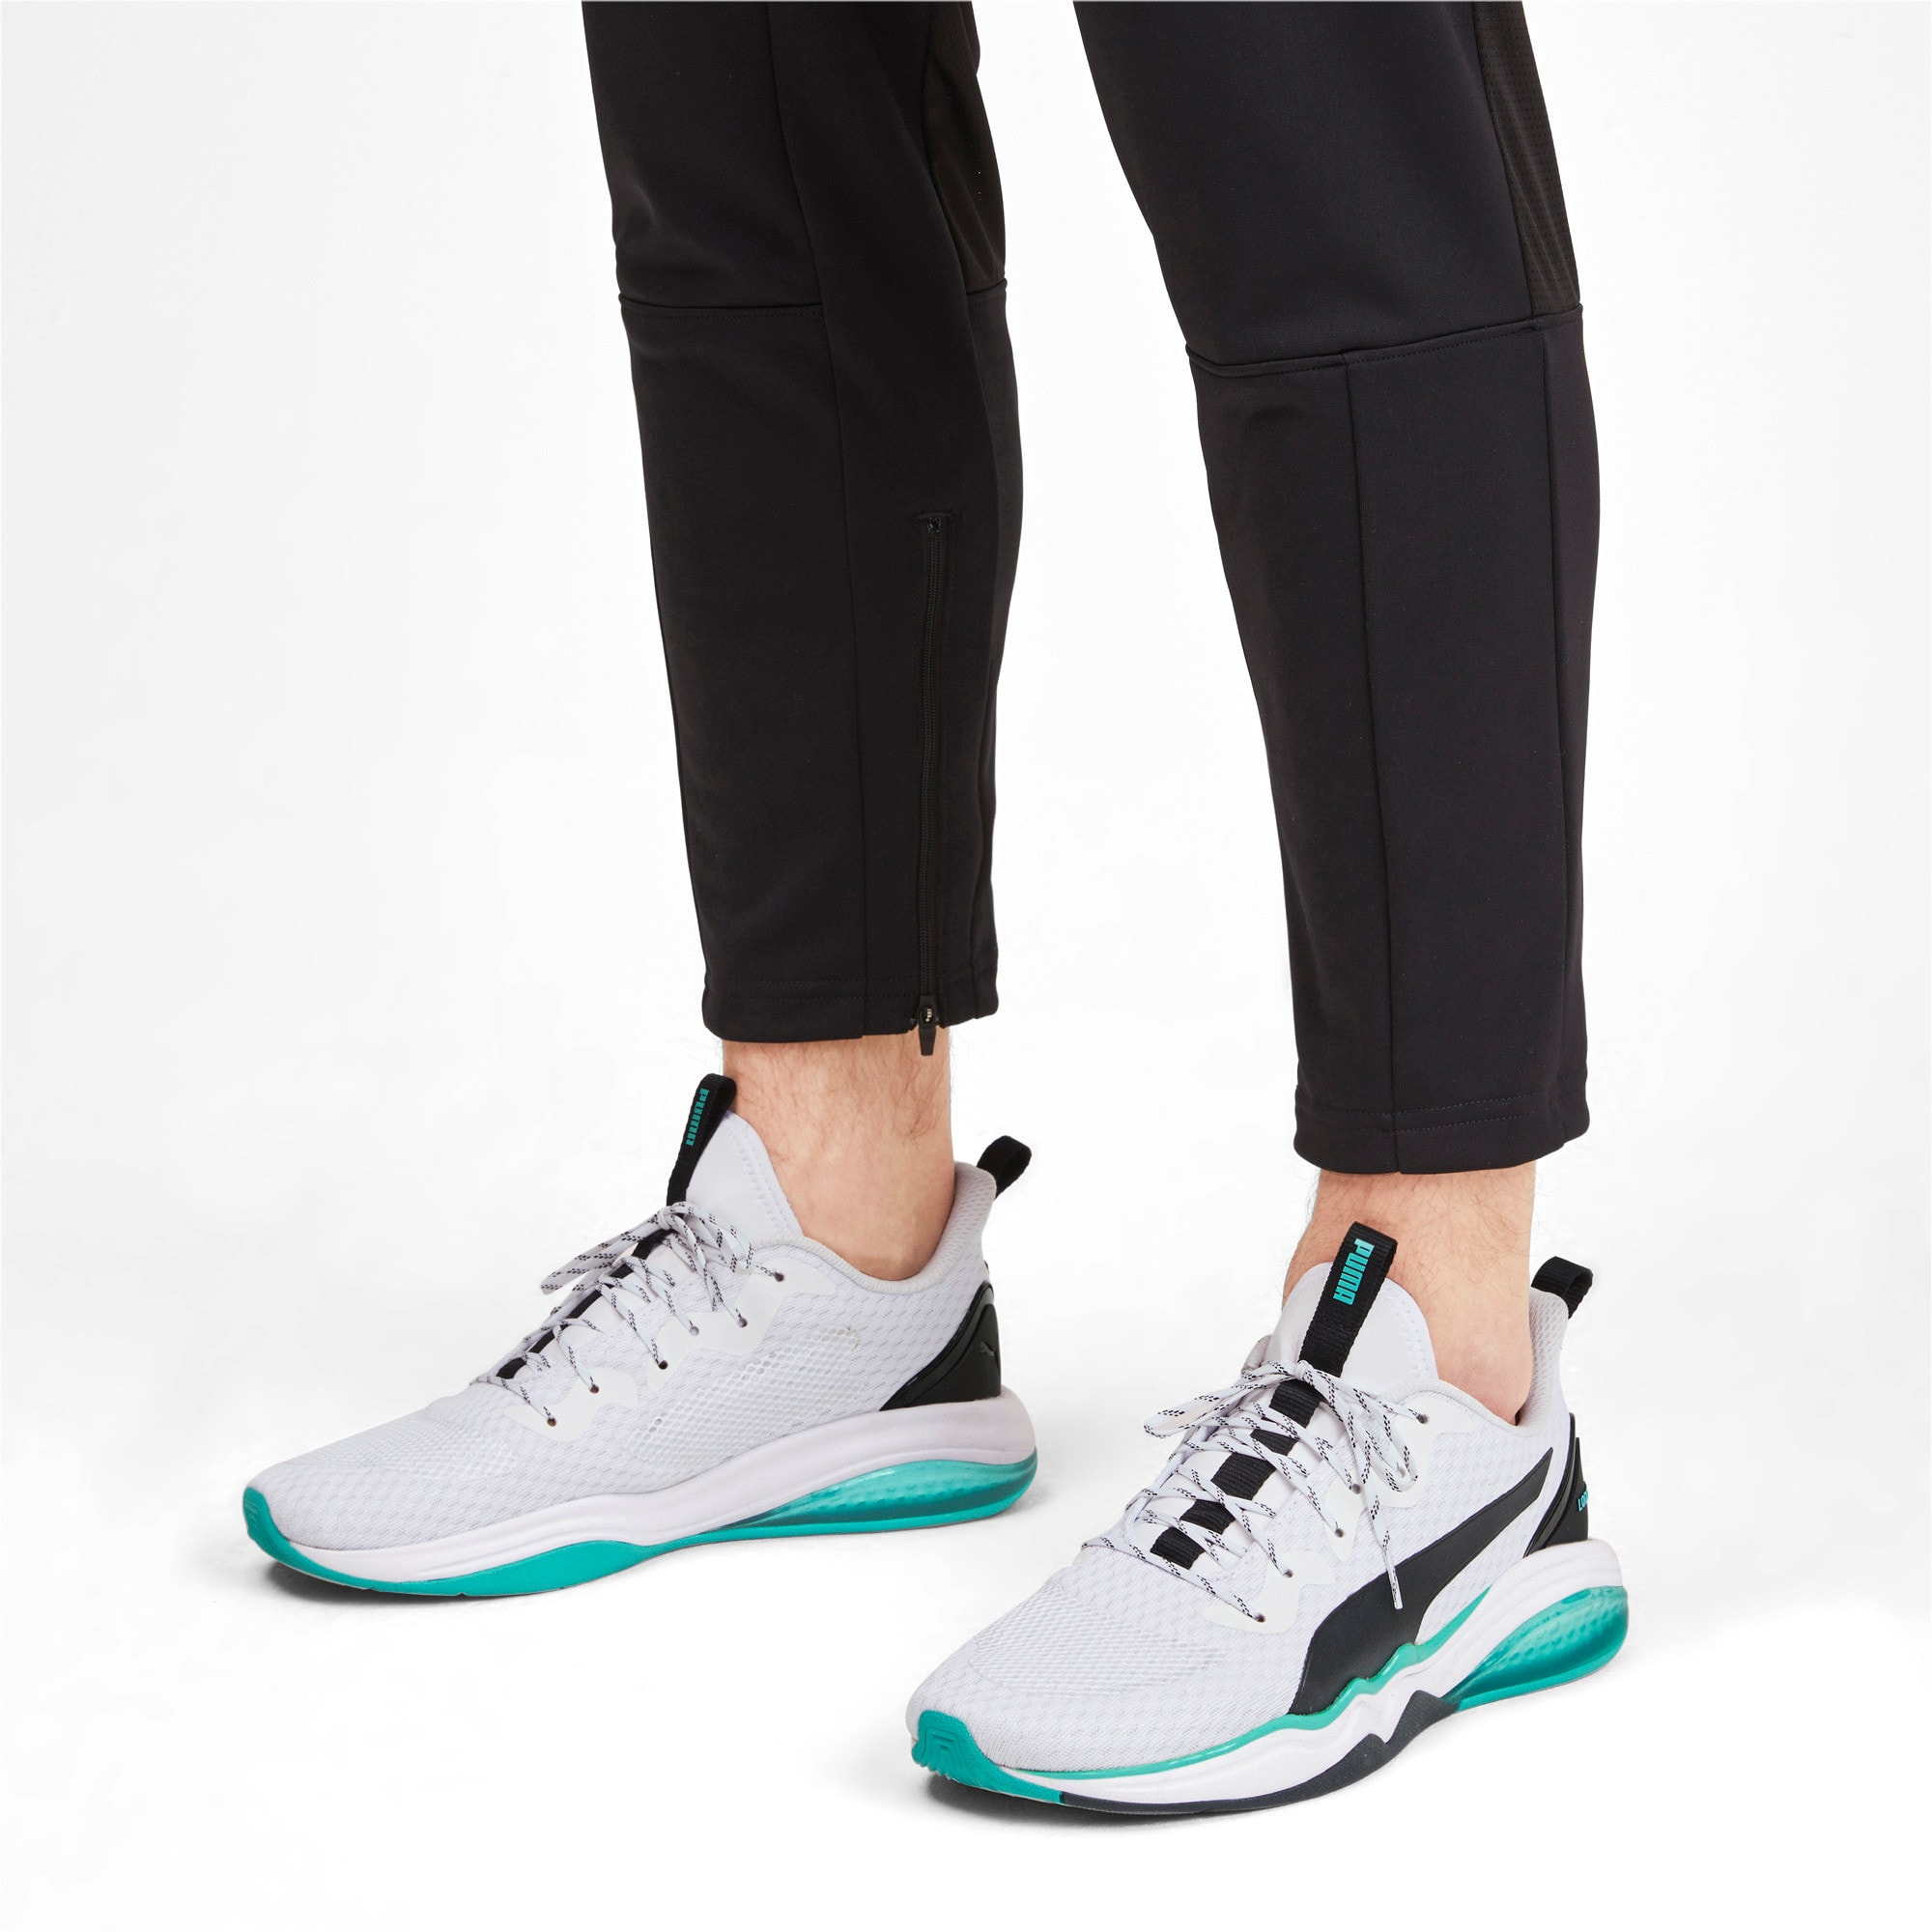 Thumbnail 3 of LQDCELL Tension Men's Training Shoes, Puma White-Blue Turquoise, medium-IND